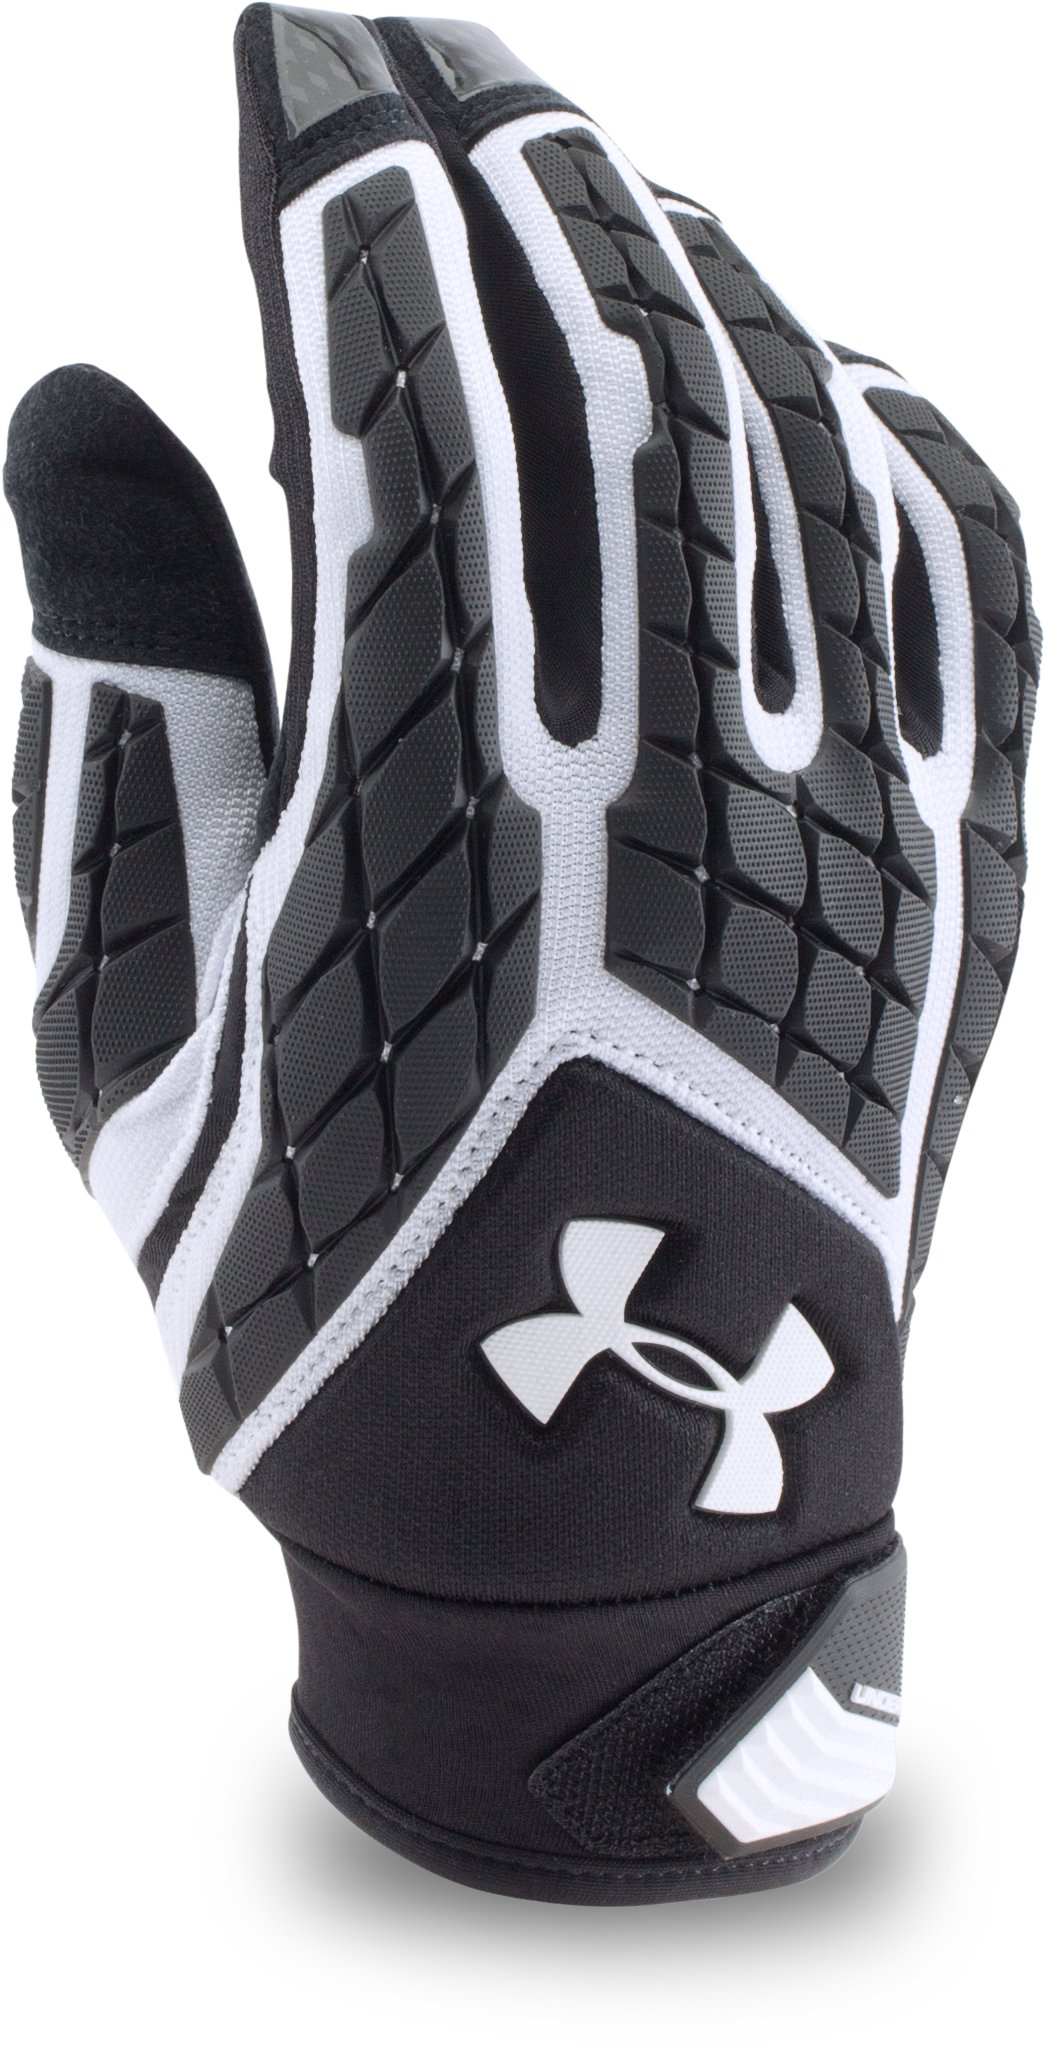 Men's UA Combat V Football Gloves, White